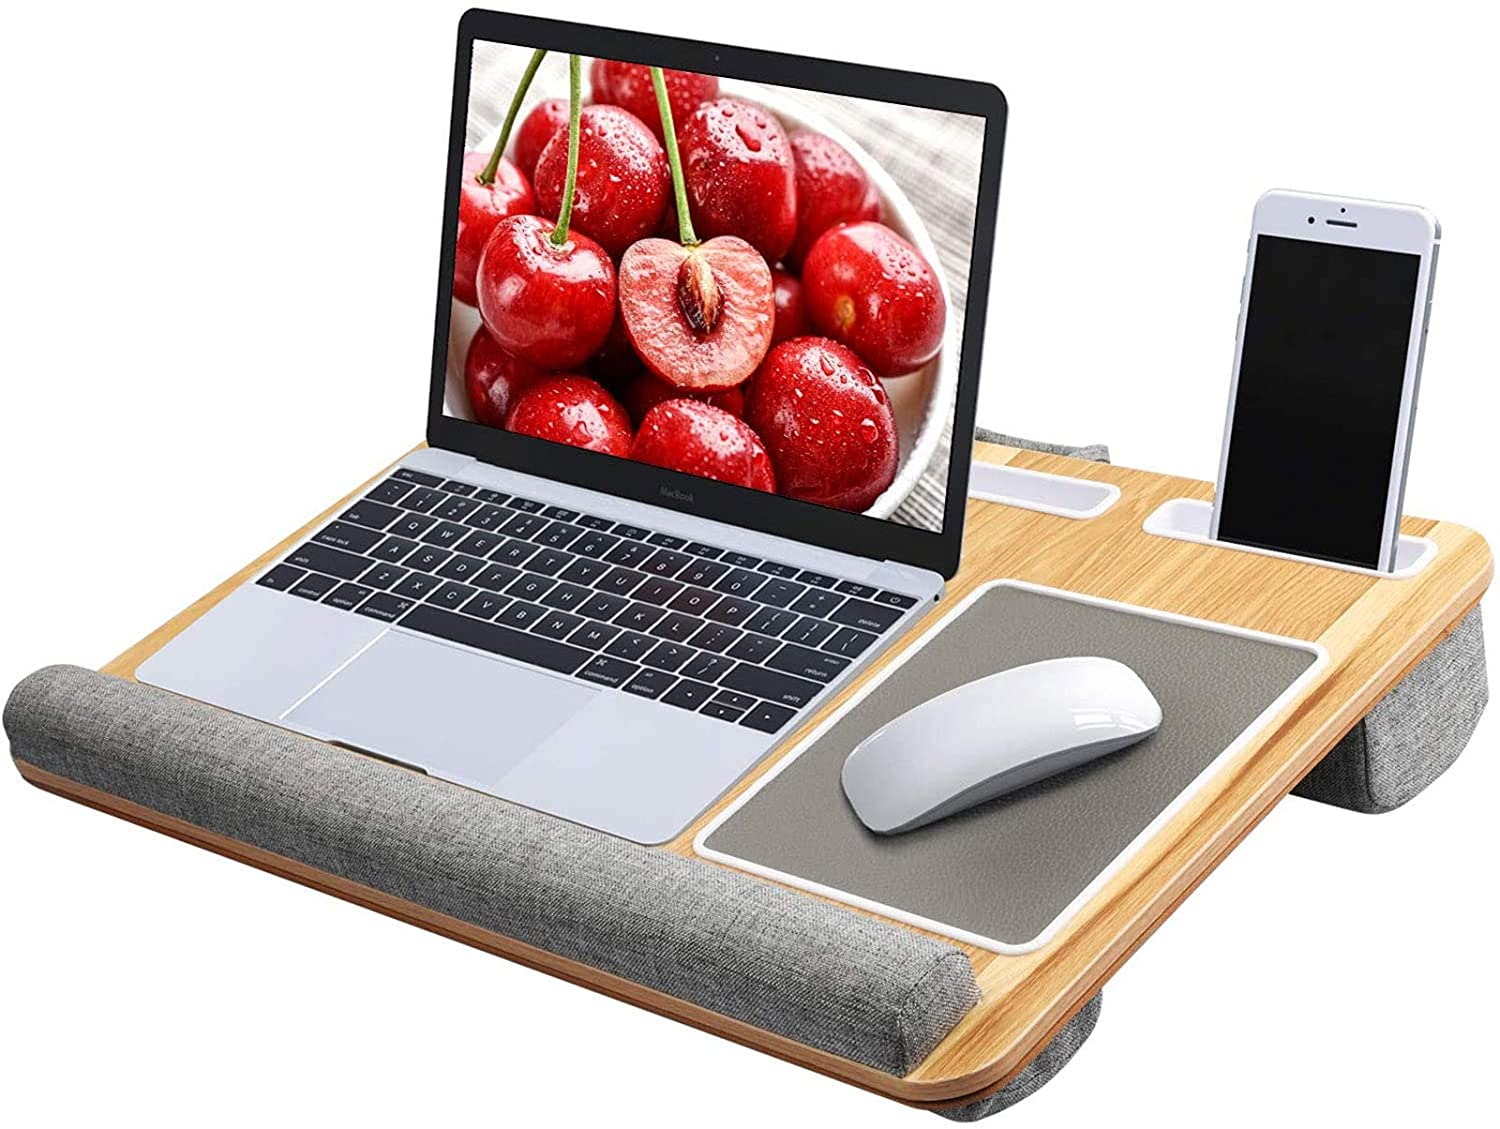 pipishell lap desk pillow laptop desk with cushion fits up to 17 in notebook macbook tablet walmart com